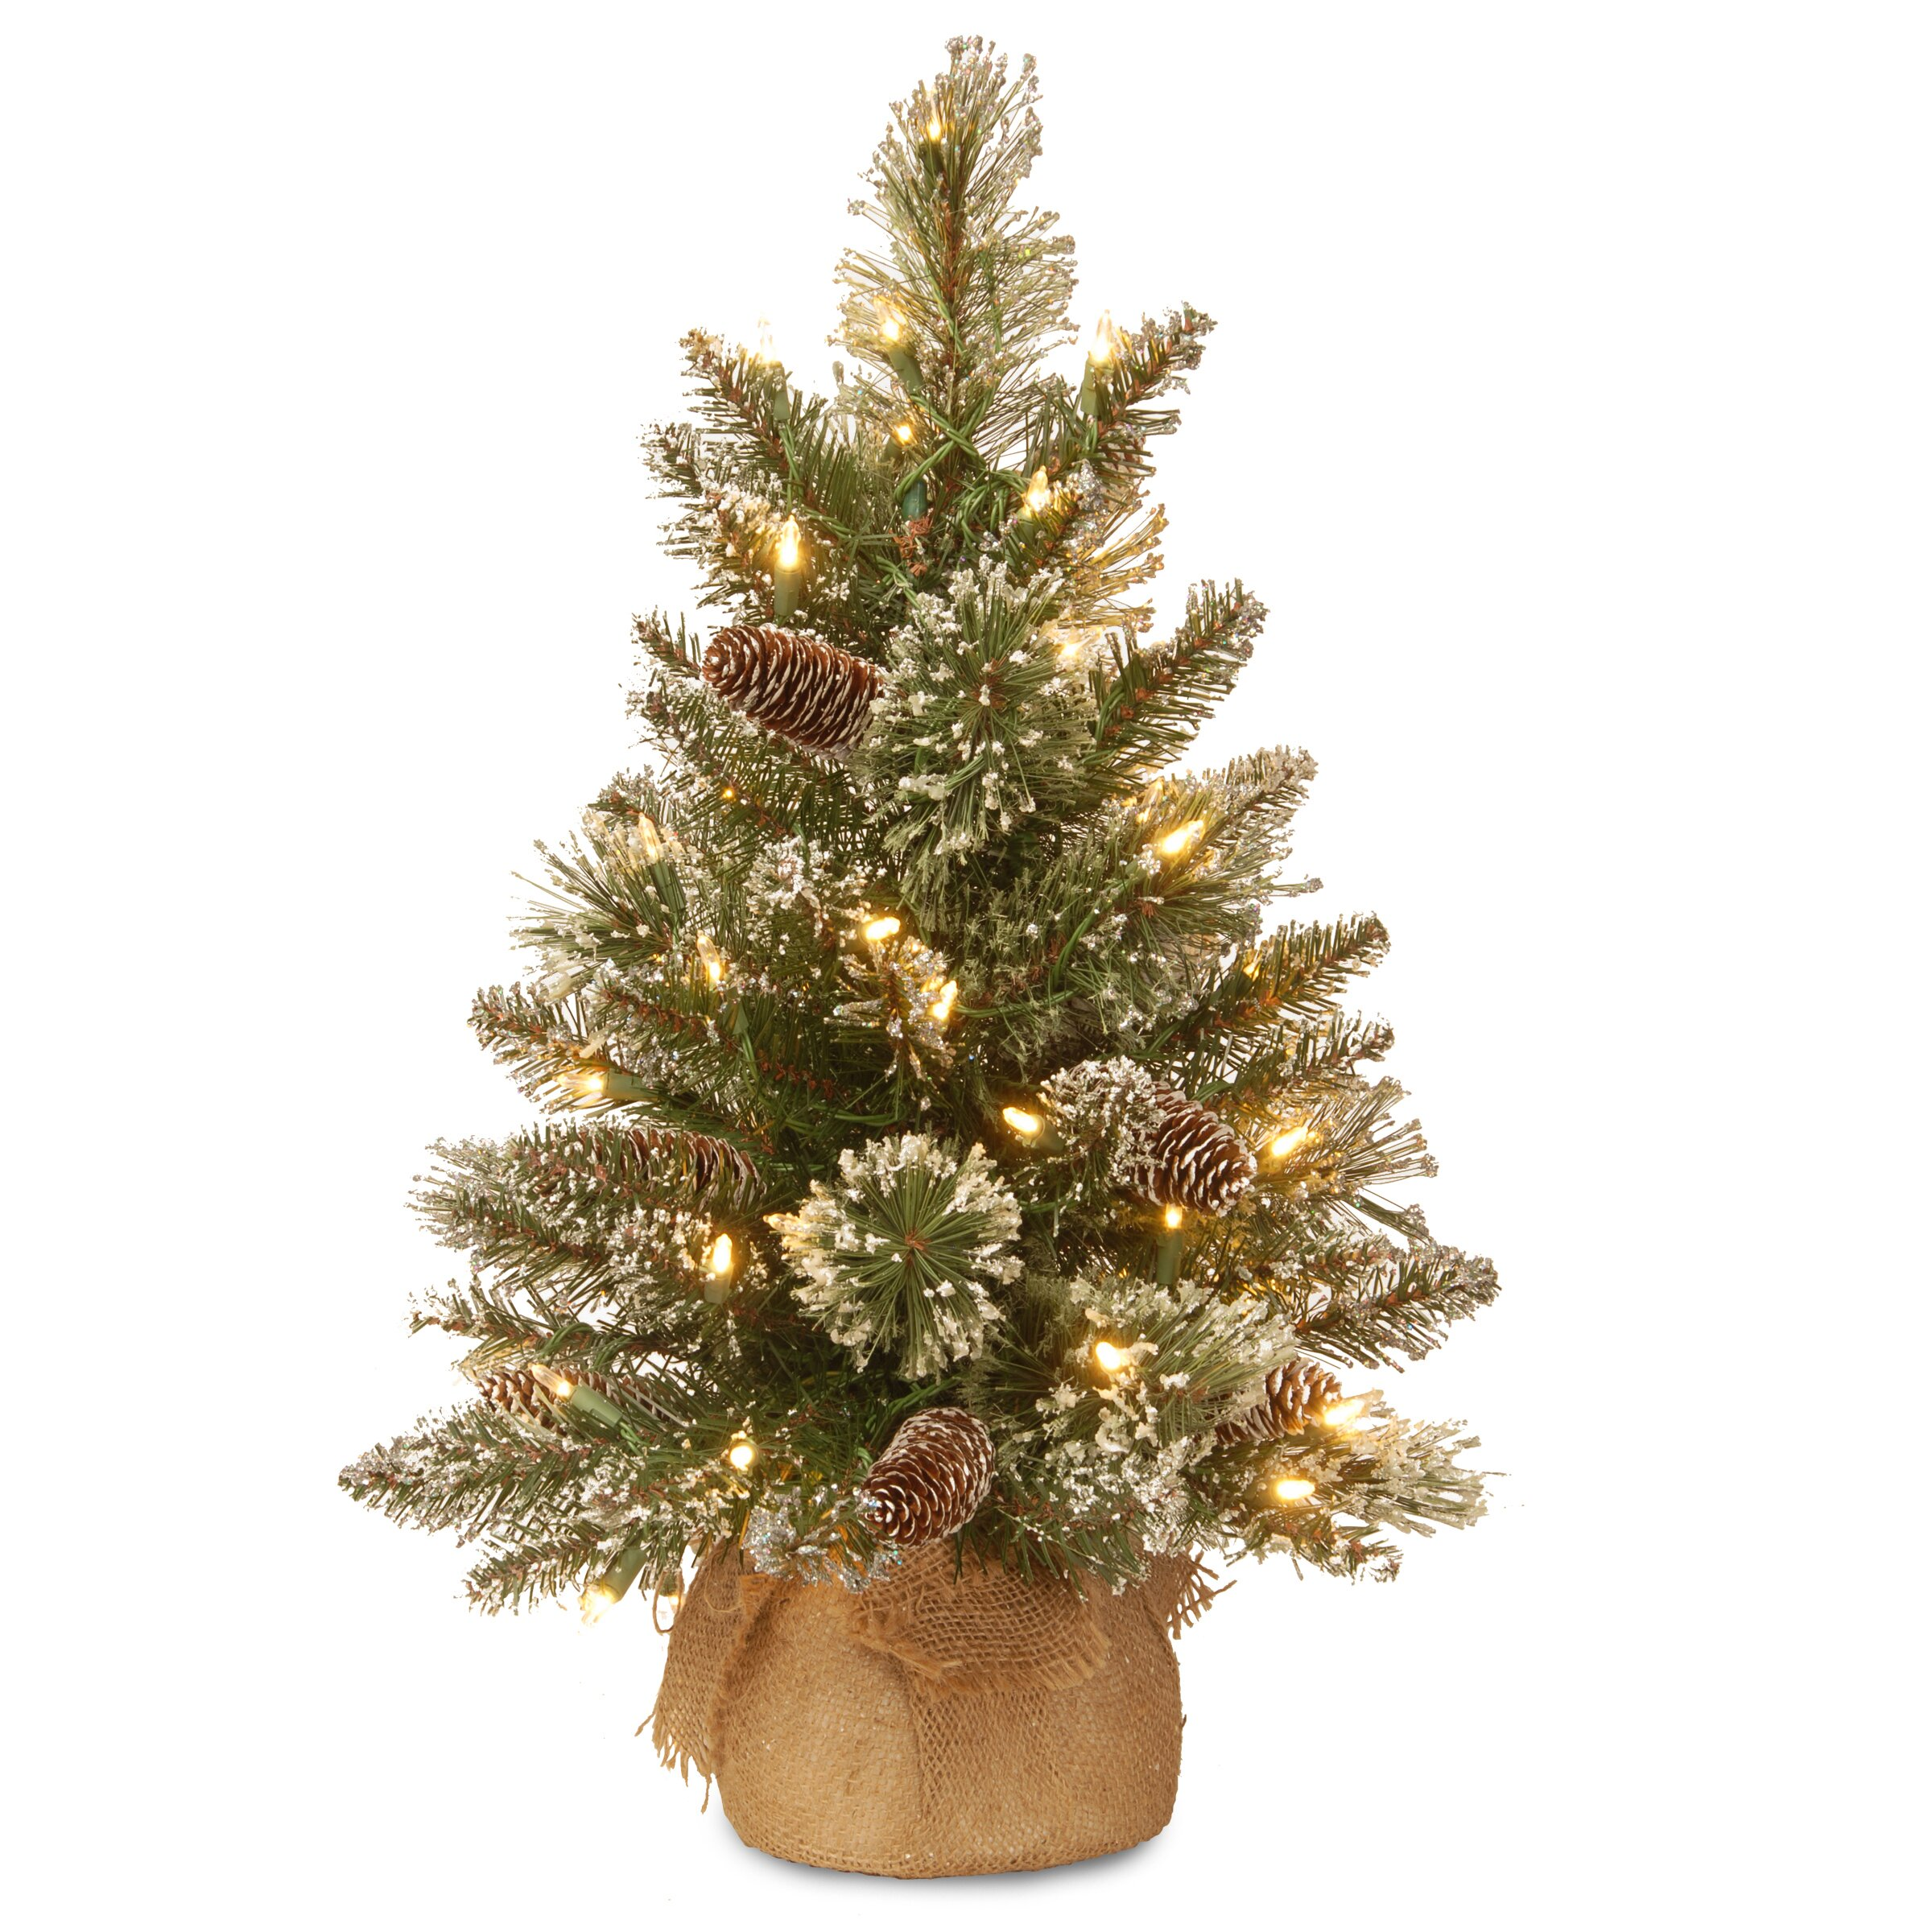 Green And White Christmas Tree: National Tree Co. Glittery Bristle 2' Green Pine